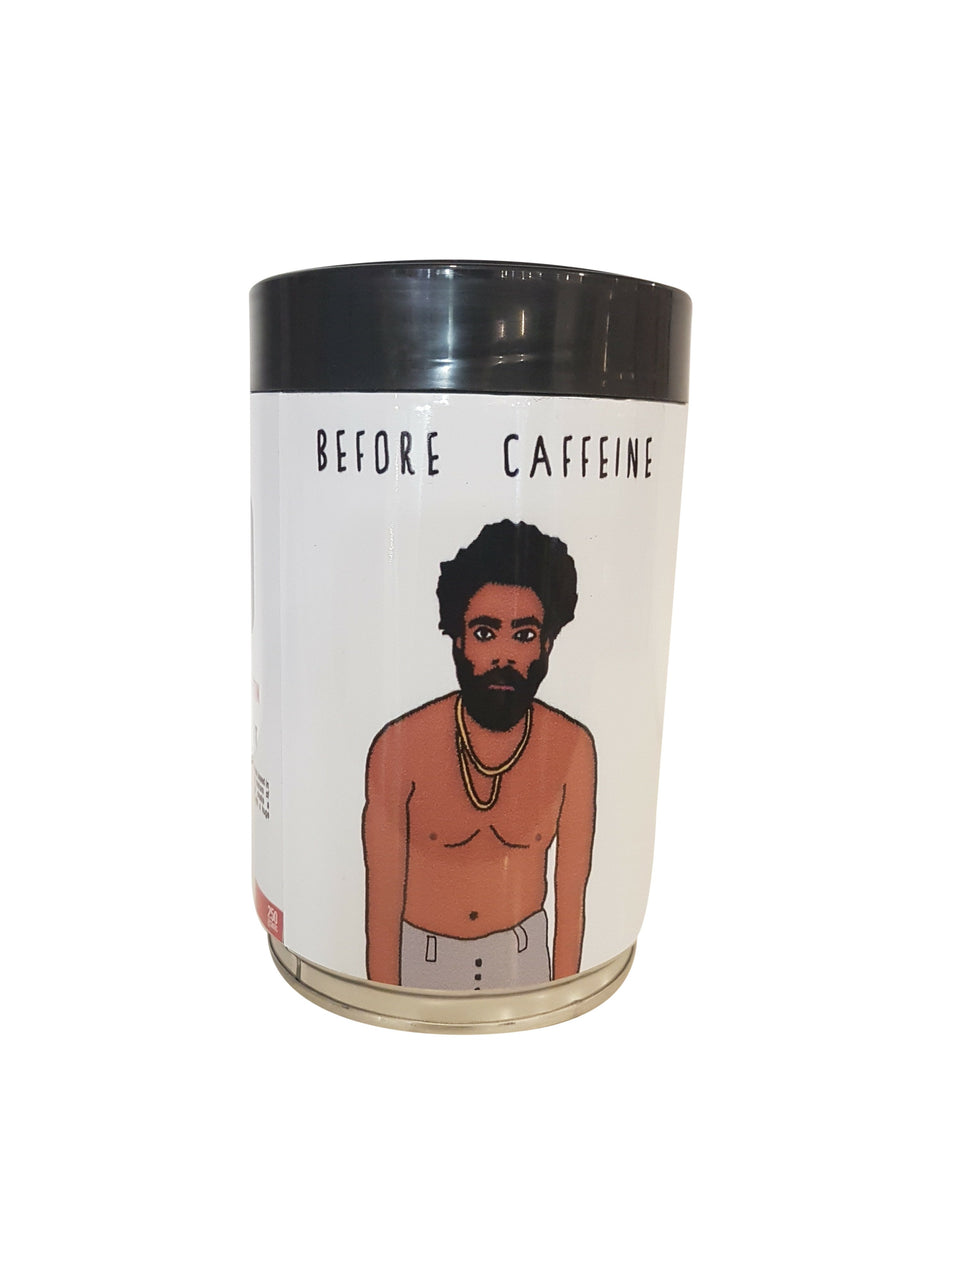 This Is A Coffee Tin